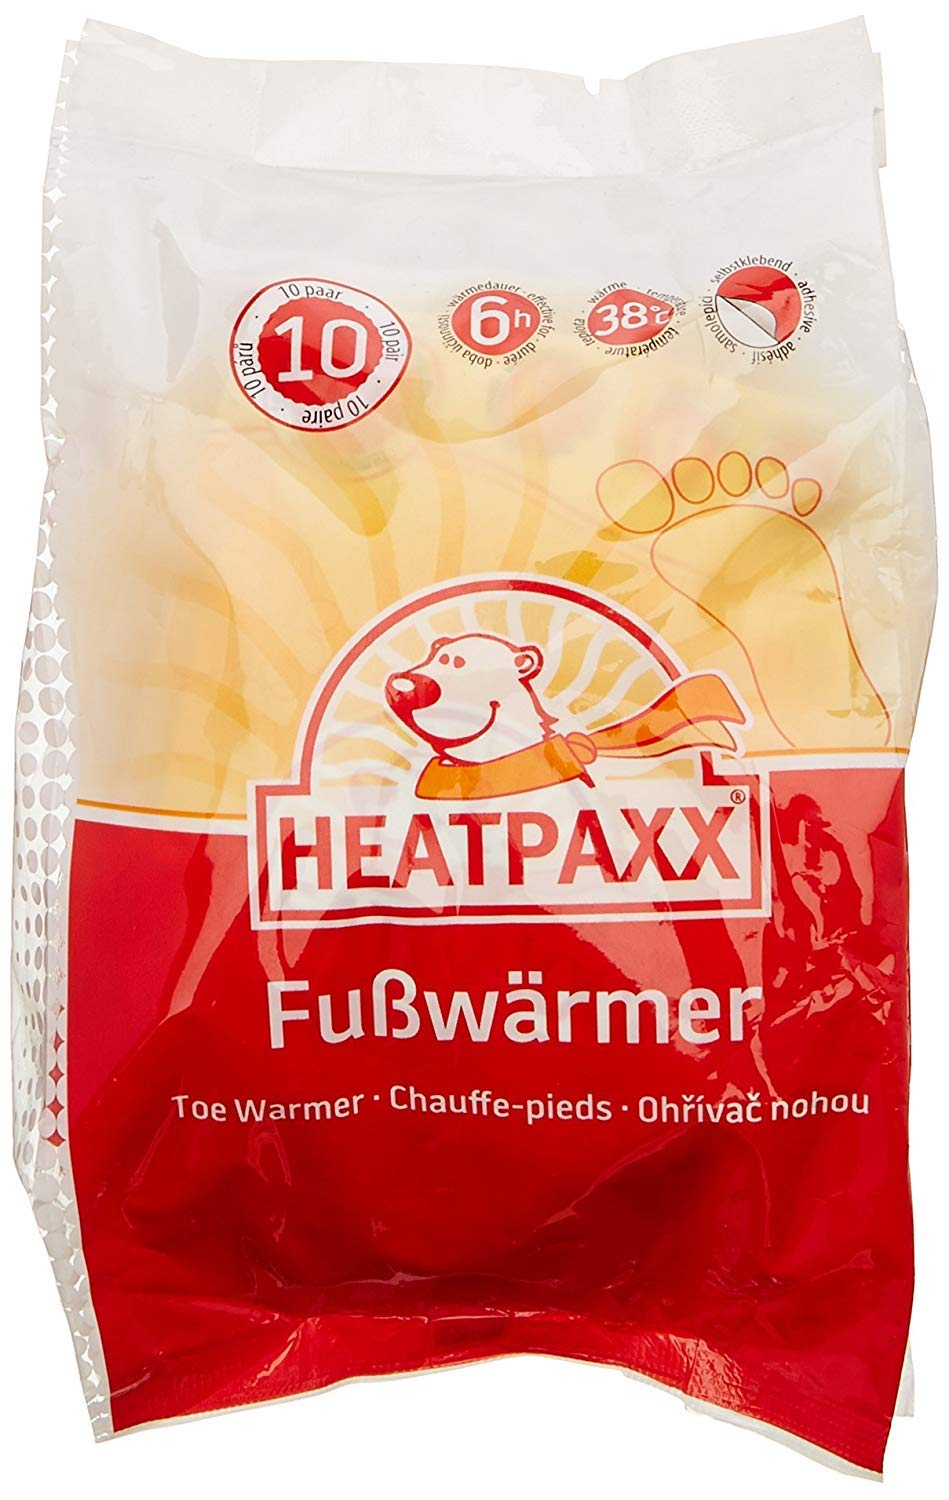 15 or 40 heat patches in a value pack Heatpaxx Body Warmer Thin Heat Patches to provide heat precisely where it is needed 5